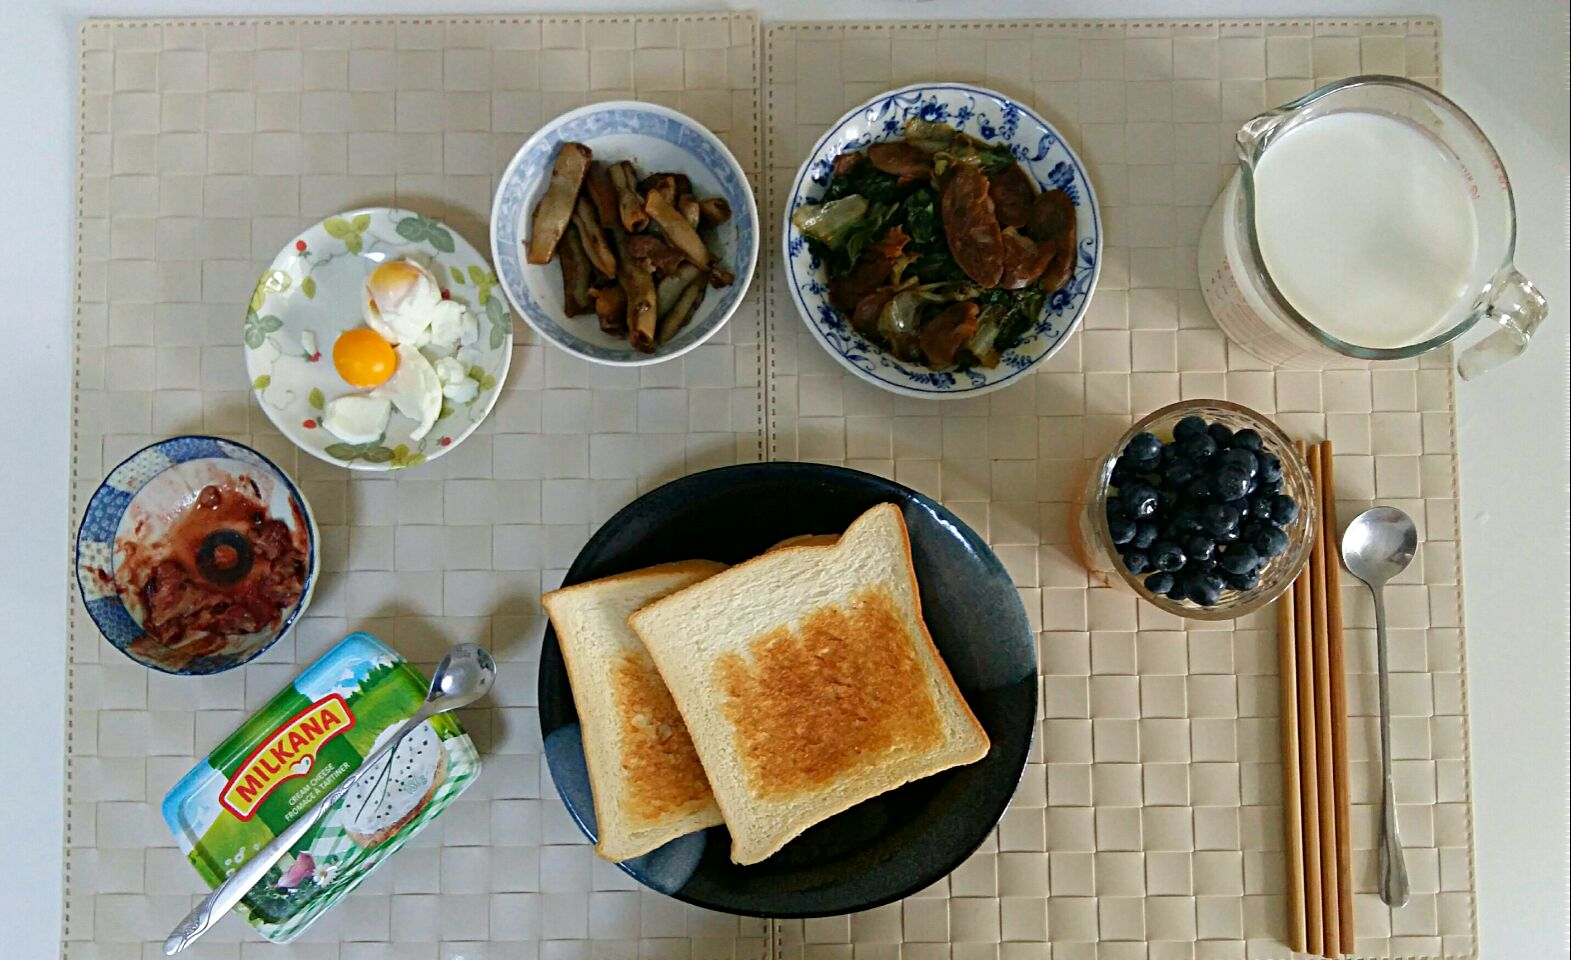 Breakfast for an adult and a kid: furu(tofu made), fried lattuce with sausage, stewed pork with Chinese long beans, boiled eggs, milk, toast, cream cheese.